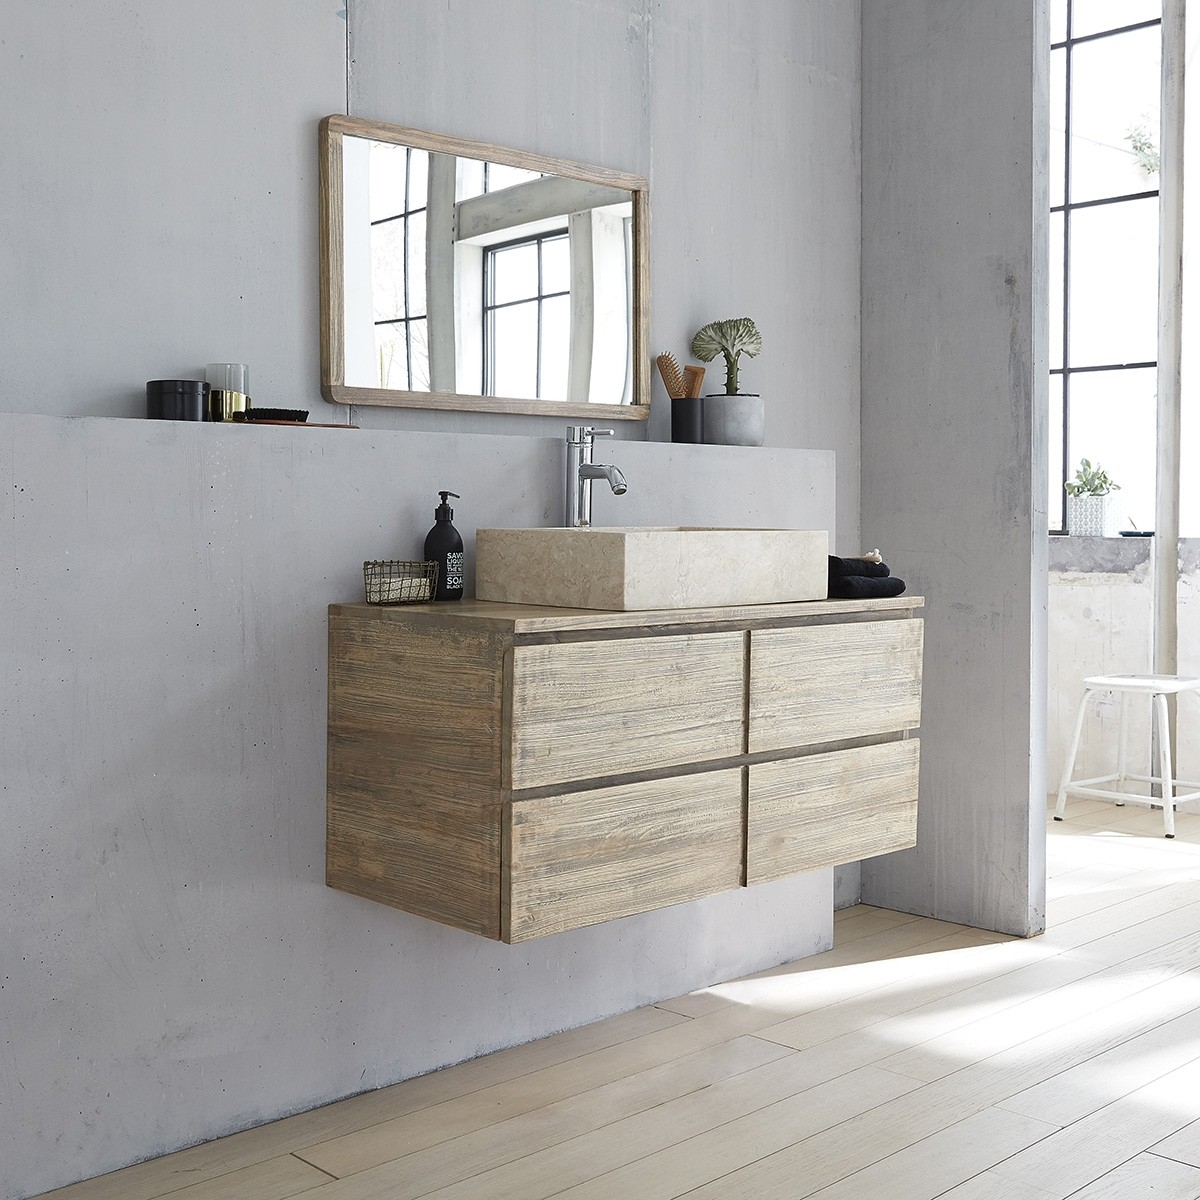 meuble de salle de bain suspendu en bois d 39 h v a 100. Black Bedroom Furniture Sets. Home Design Ideas